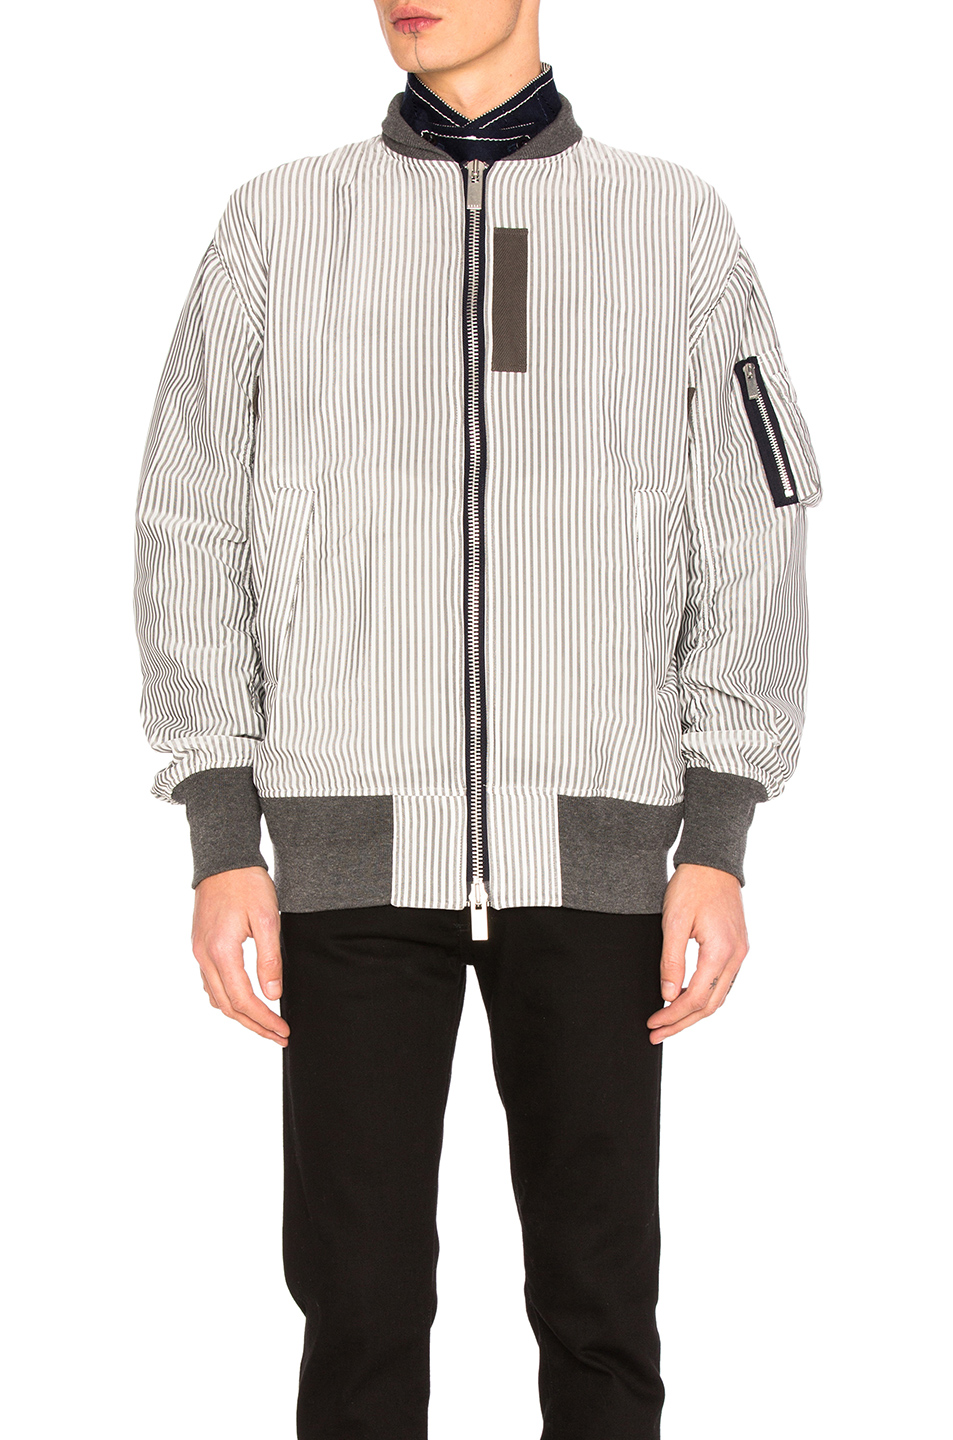 Sacai Hickory Stripe Blouson in Black,White,Stripes